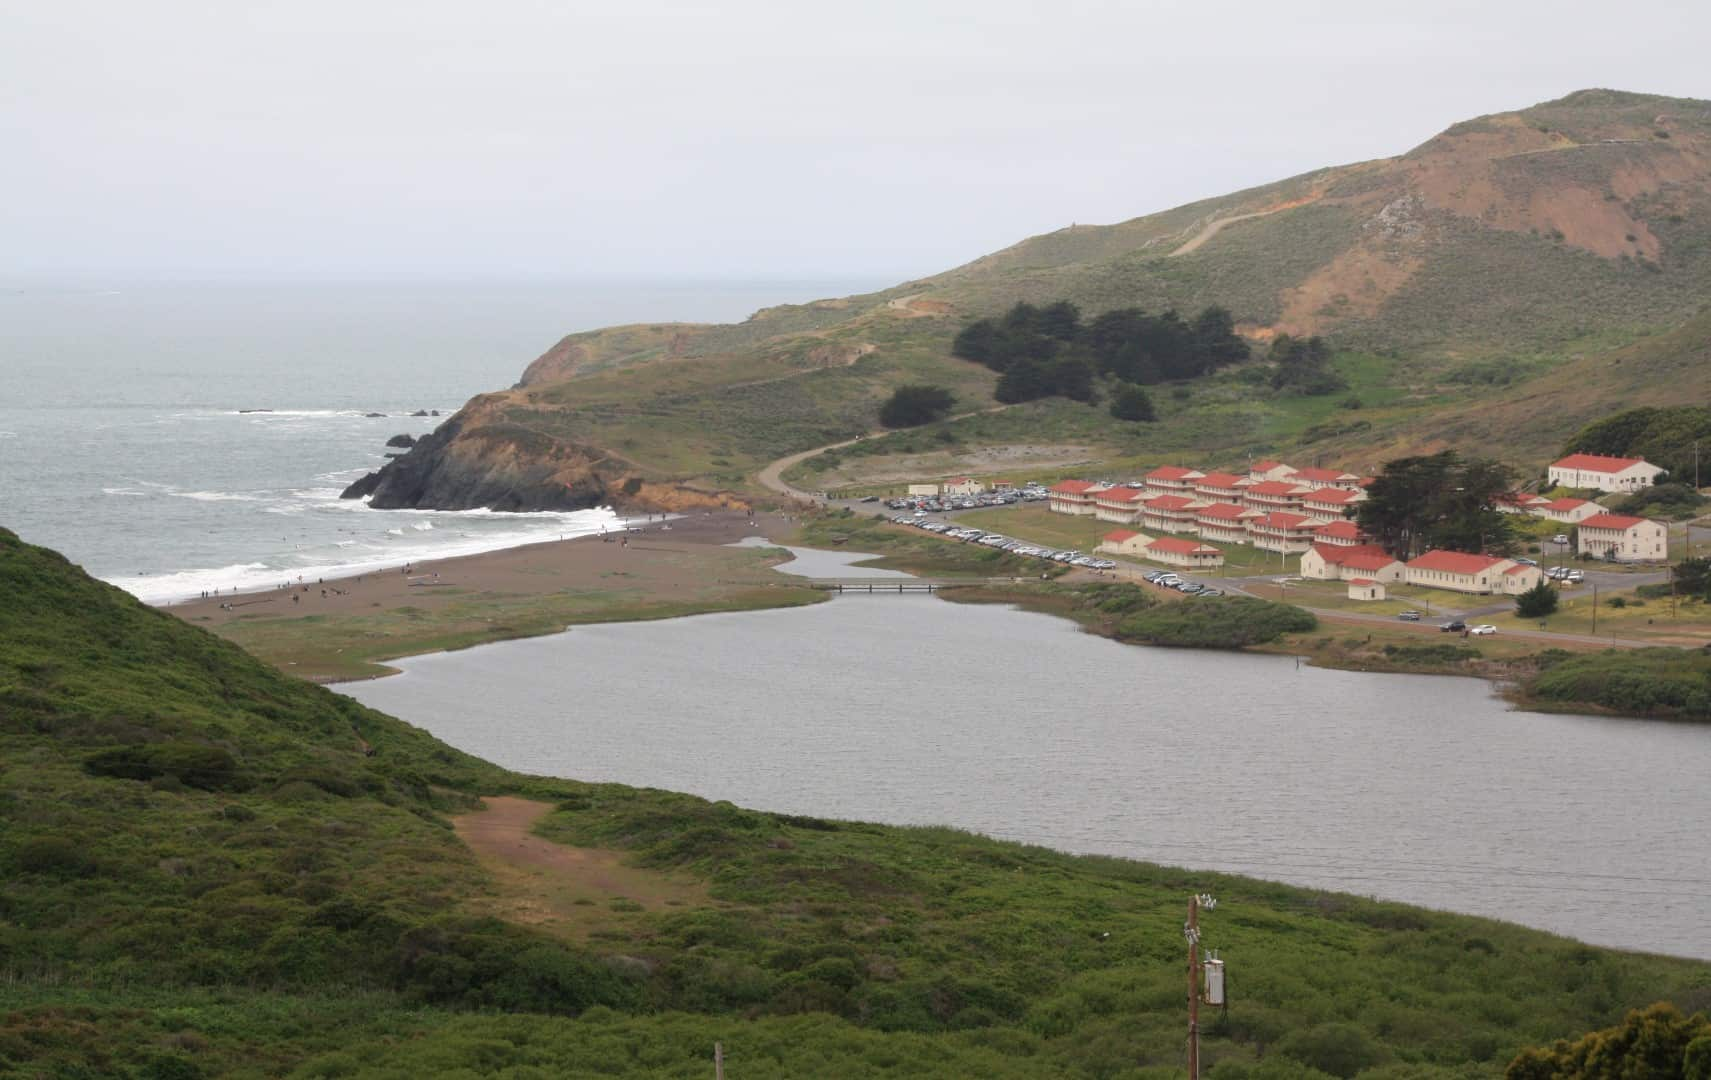 rodeo-beach-in-mill-valley-sausalito